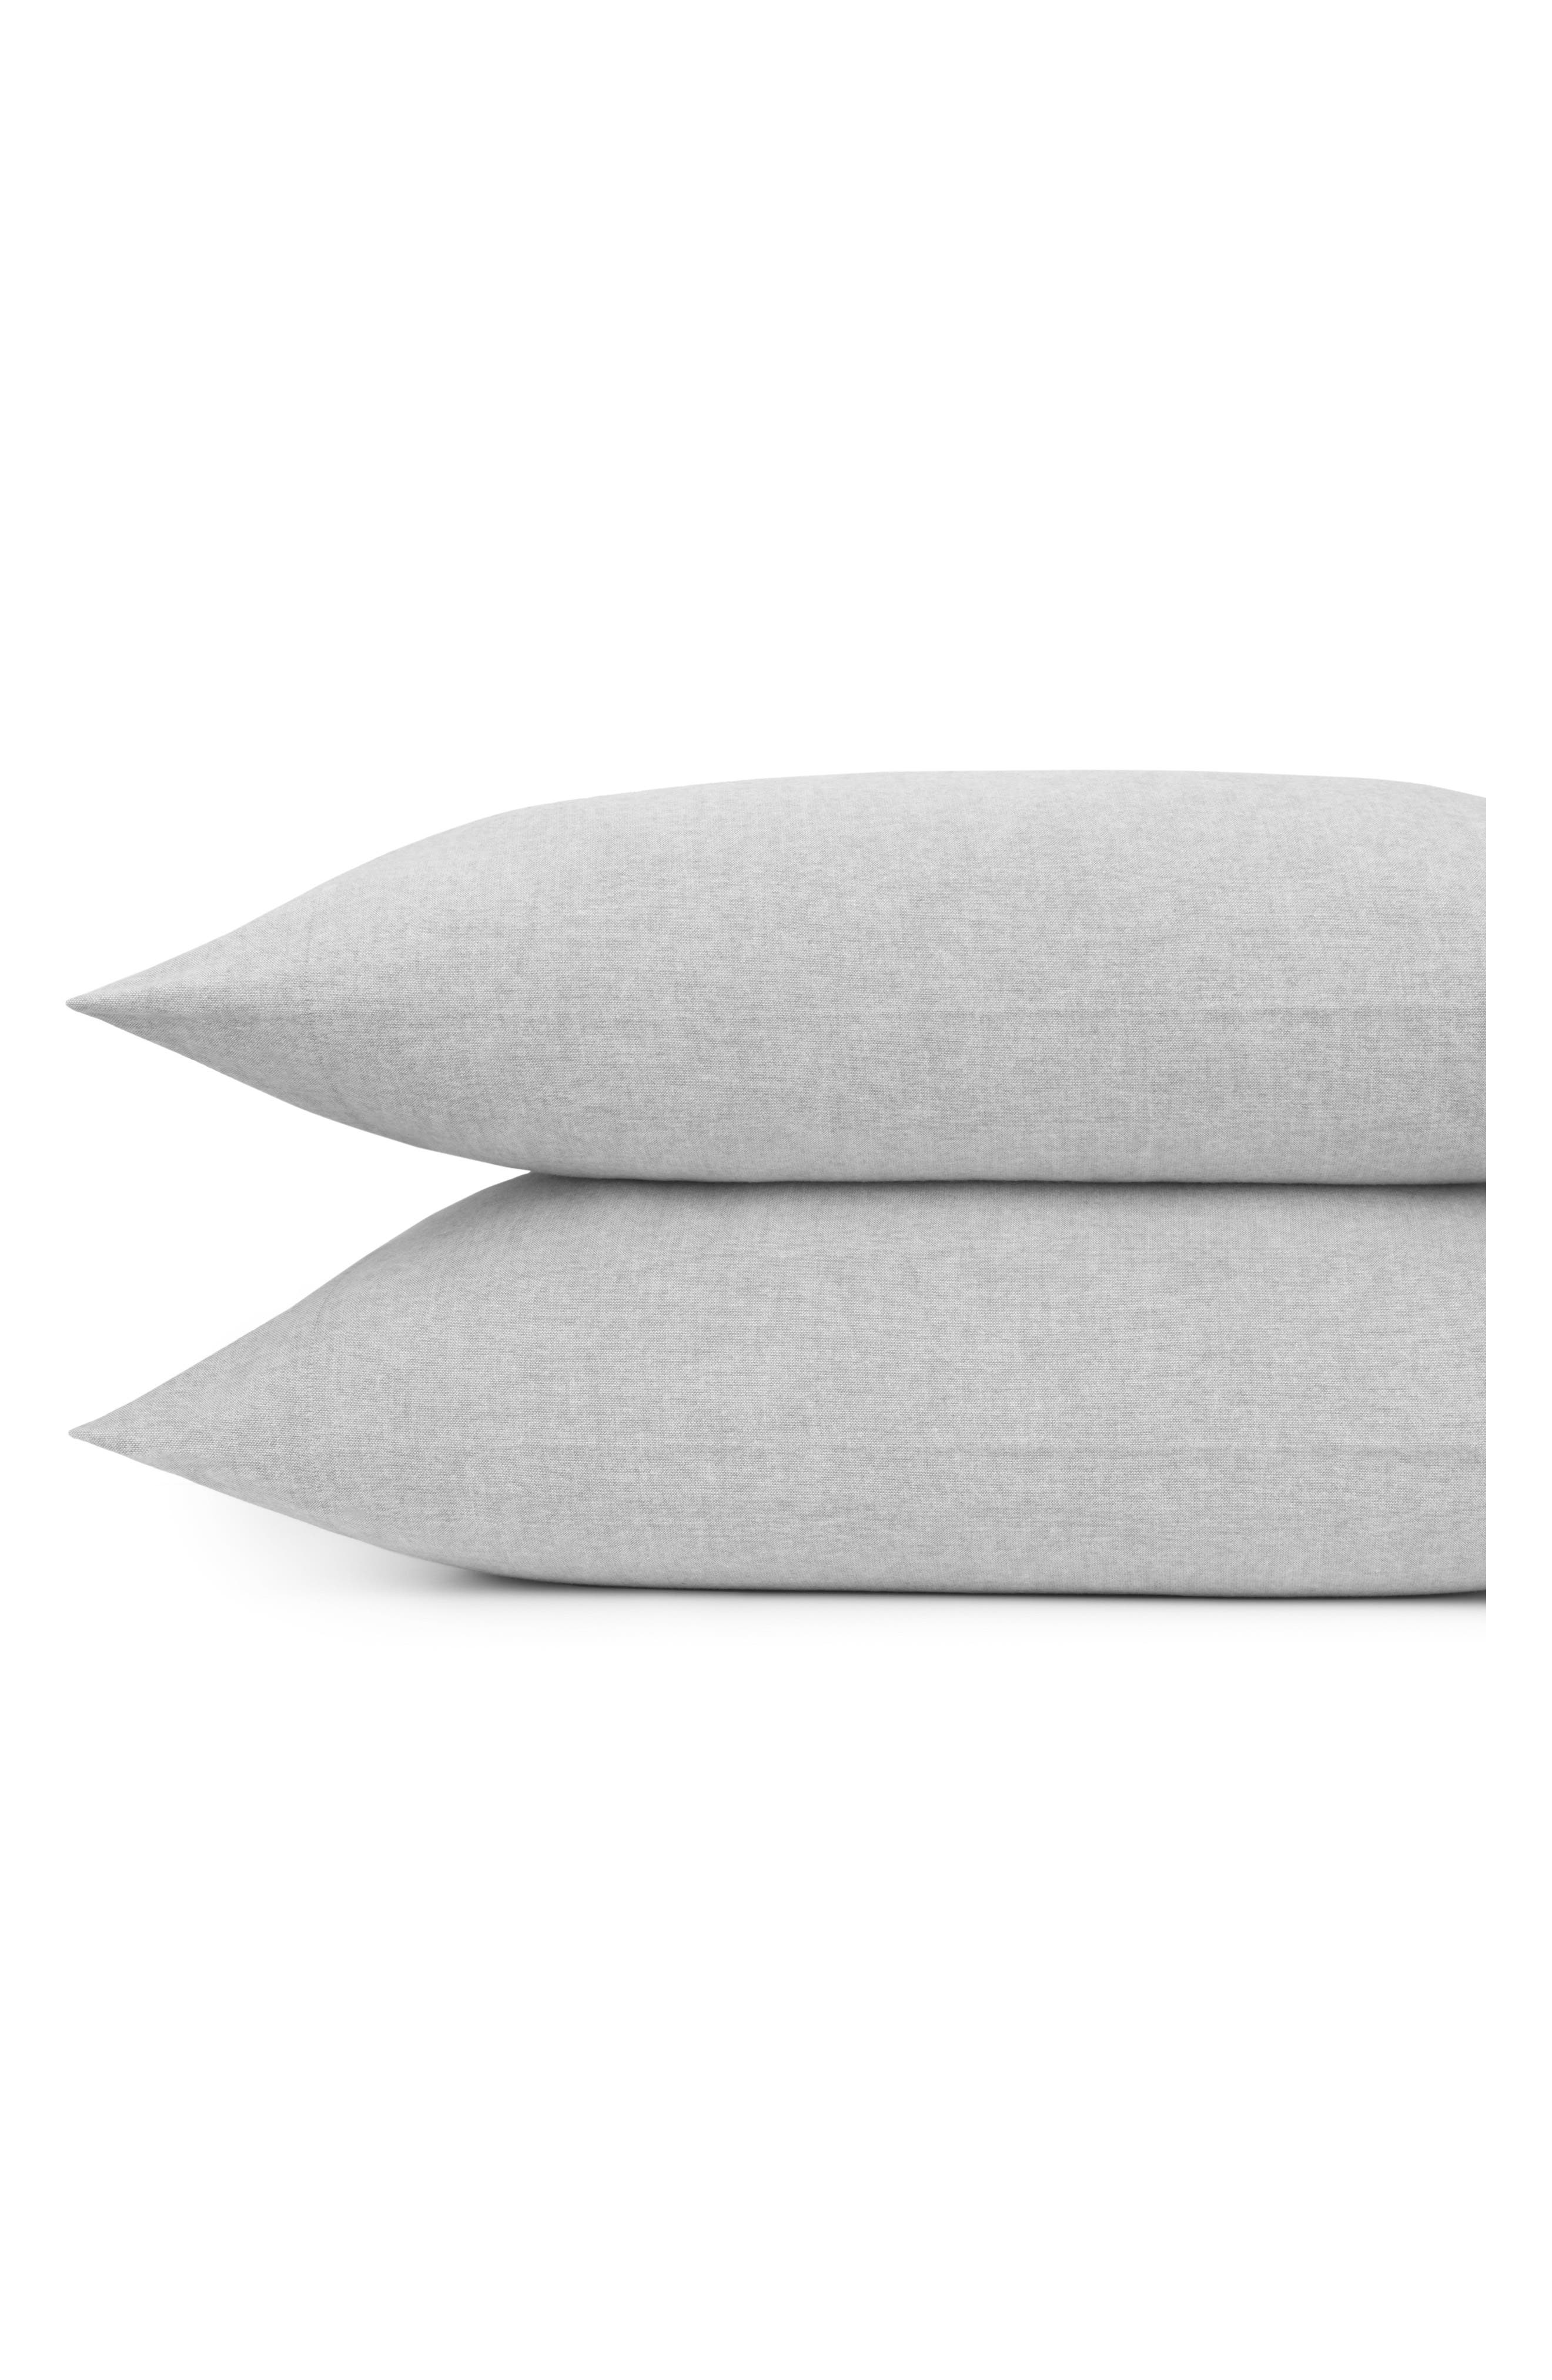 Flannel Luxe Pillowcases,                         Main,                         color, 060